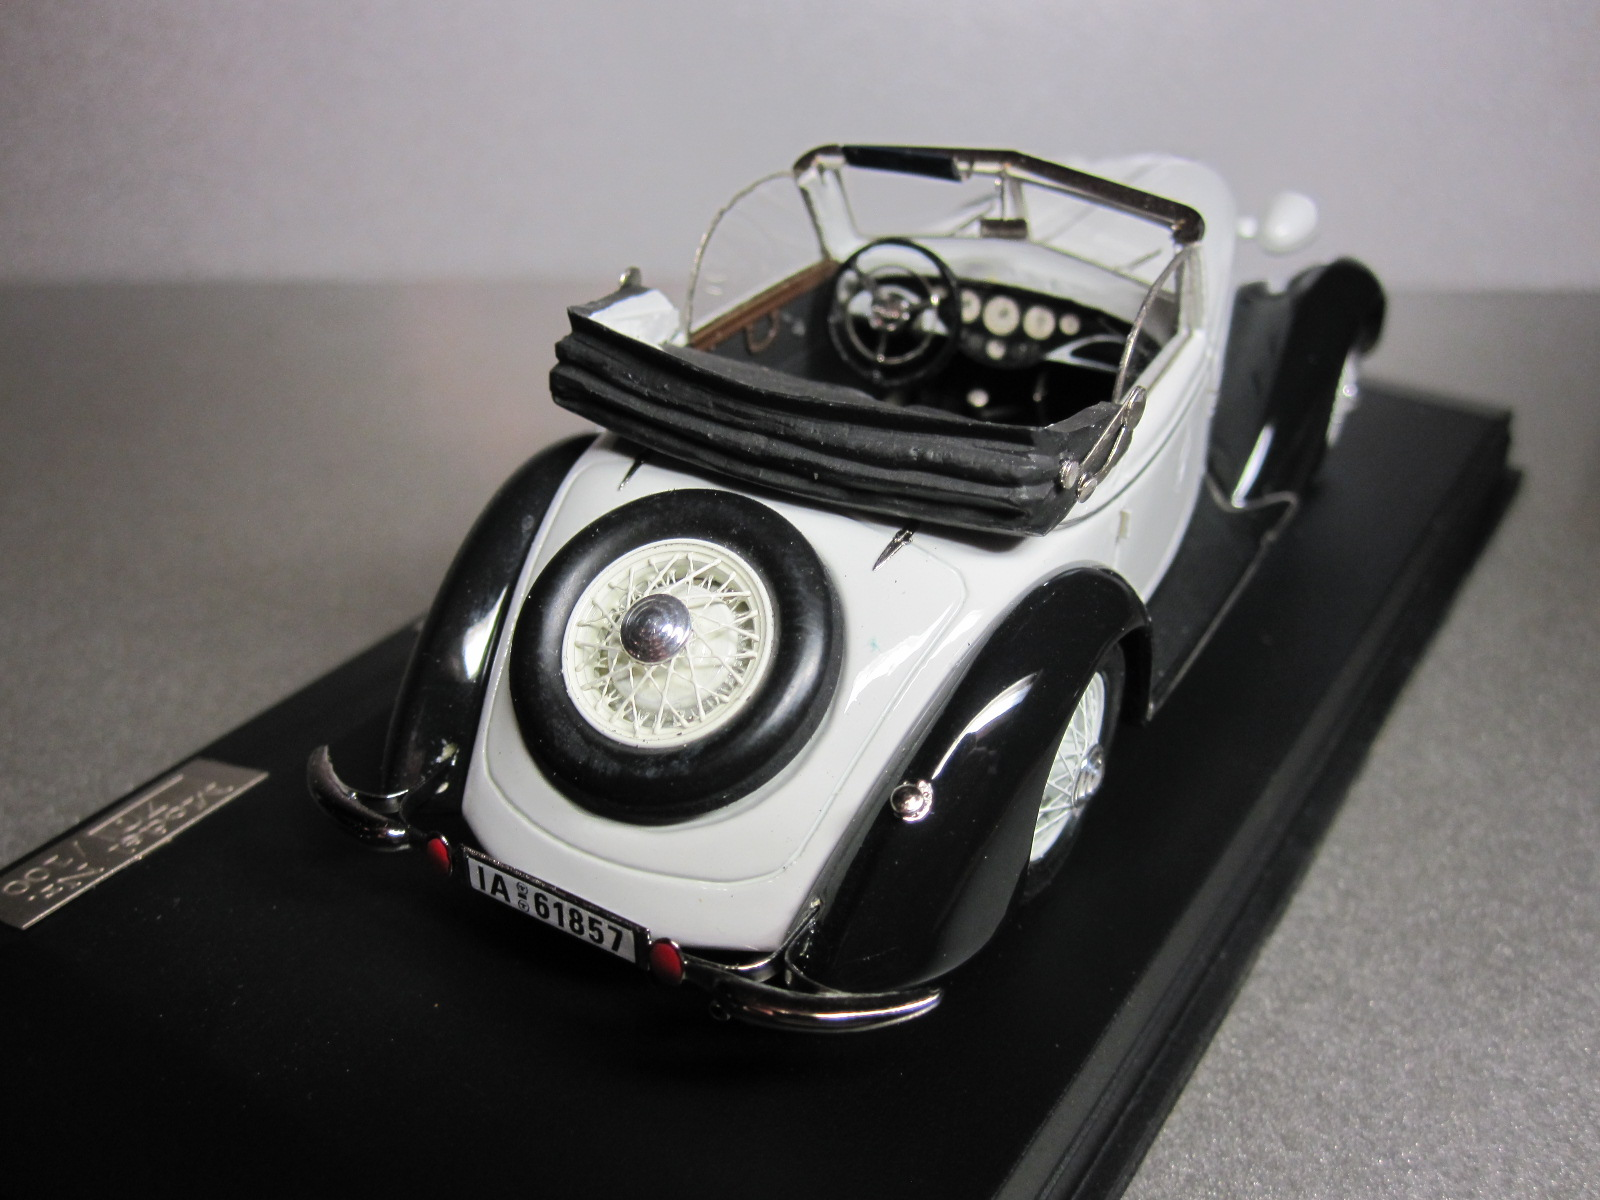 ZZ Model: 1936 Wanderer W 25K Cabriolet White-Black (70/100) in 1:43 scale . Picture provided by Aleksandr (Desdemona), 2010-06-08 15:01:40